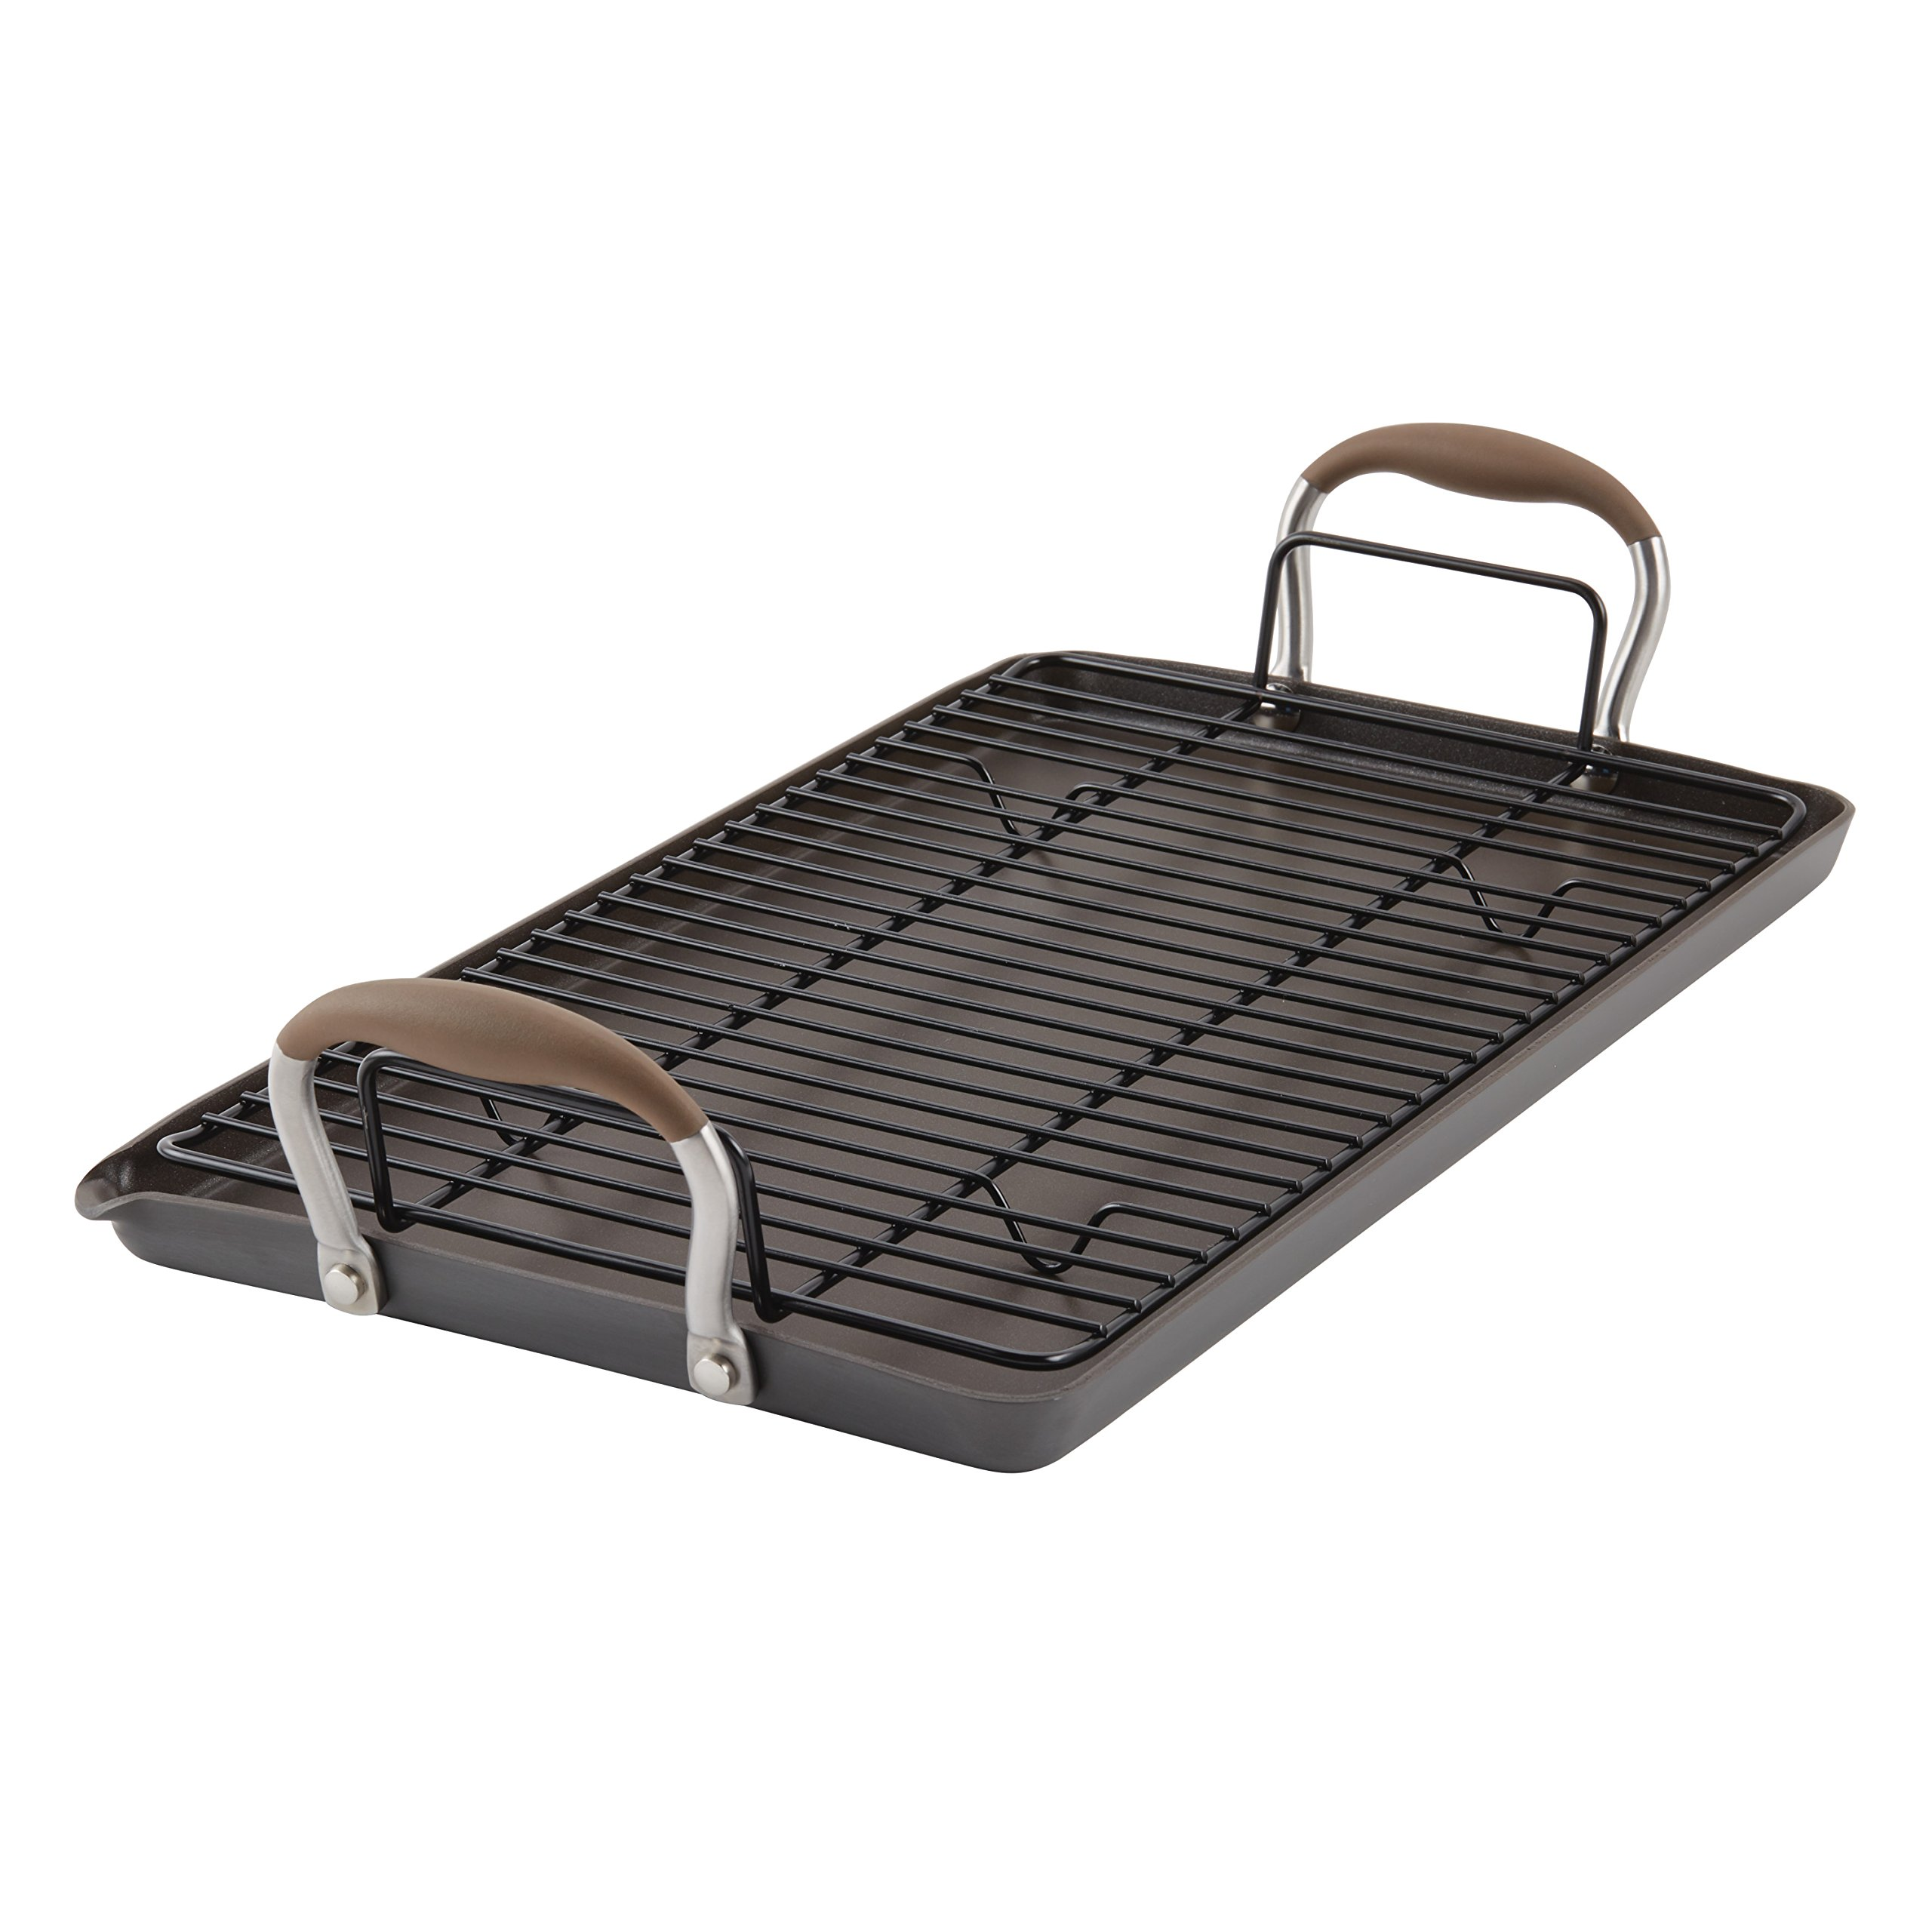 Anolon 83870 Advanced Griddle & Rack, Medium, Bronze